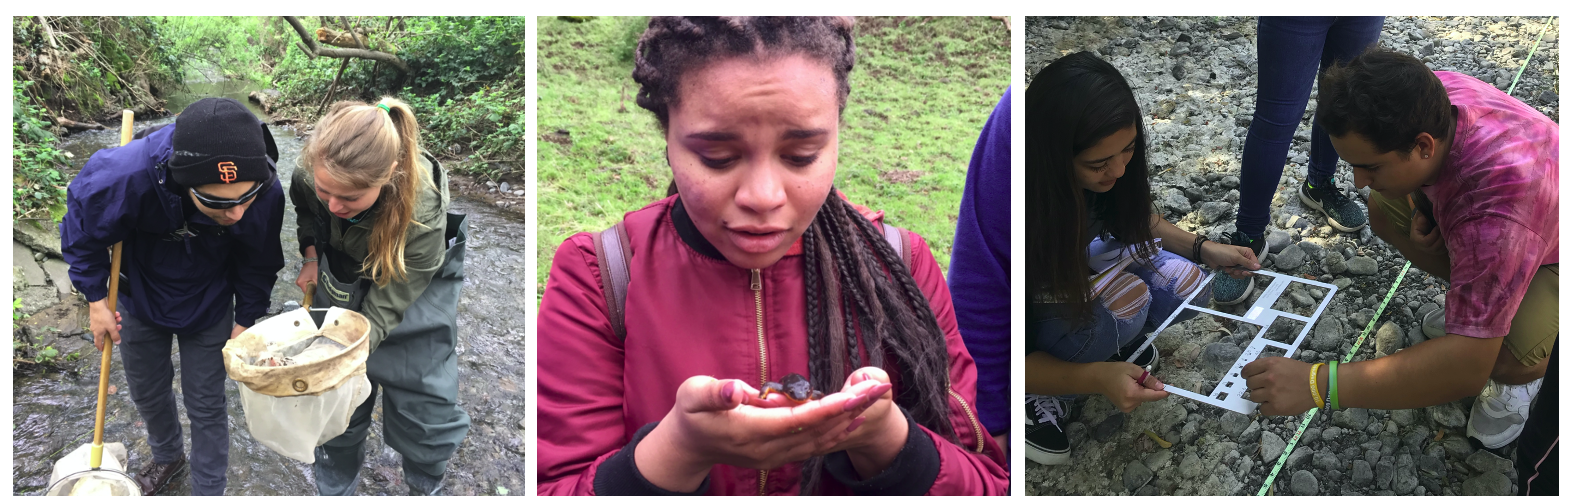 L to R: Two students peering into a dipnet; a woman holding a newt; two students measuring gravel in a dry creek bed